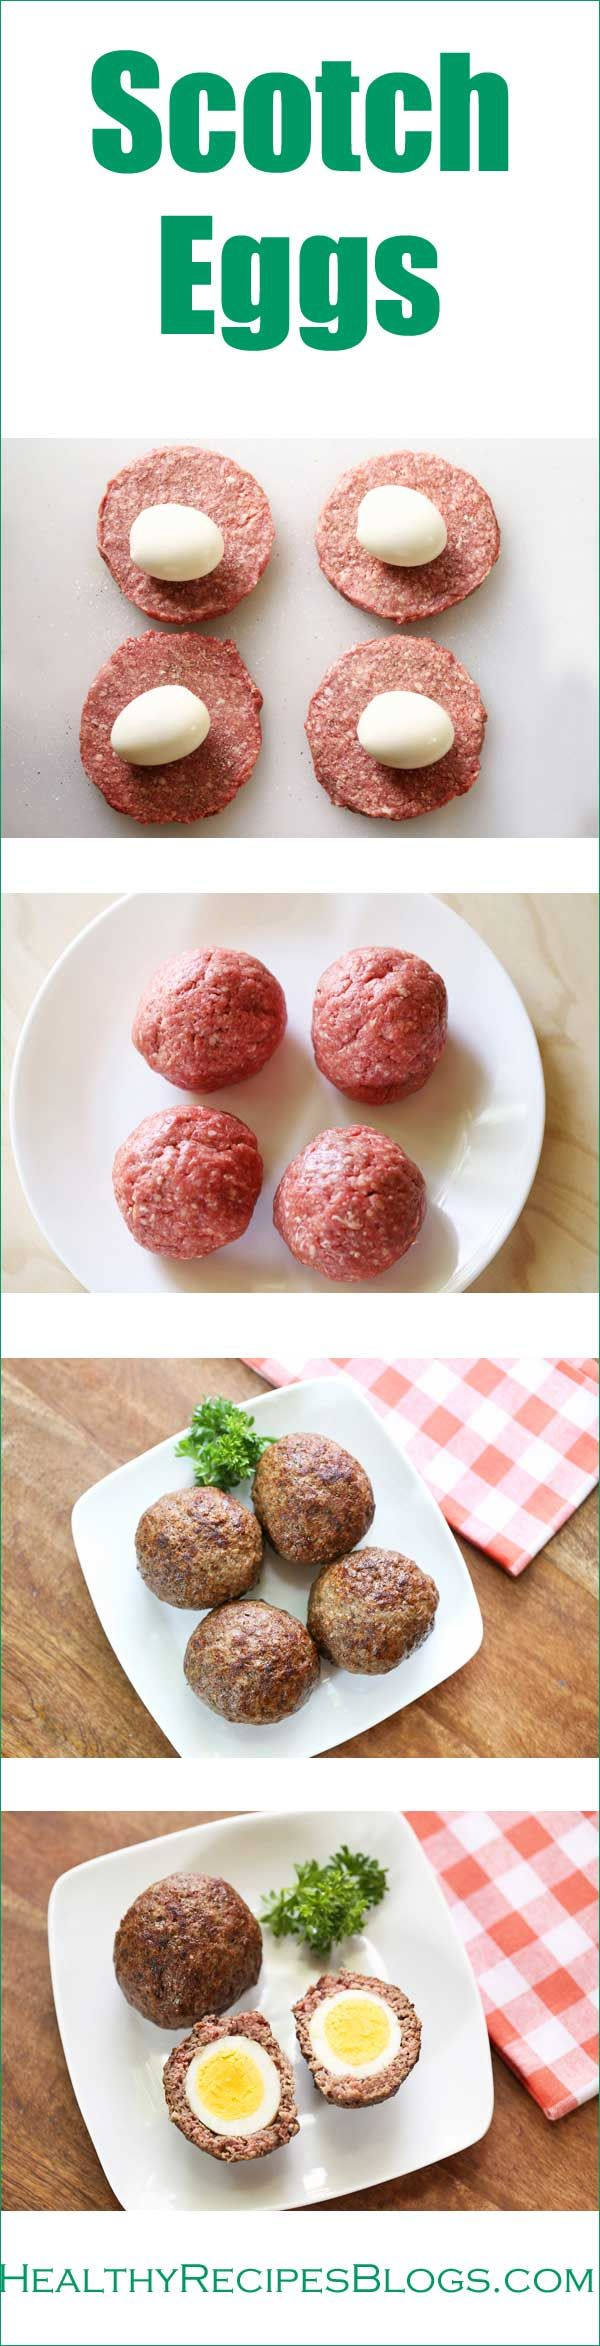 Scotch eggs – hard boiled eggs enclosed in sausage meat – make a fun, tasty meal or snack.